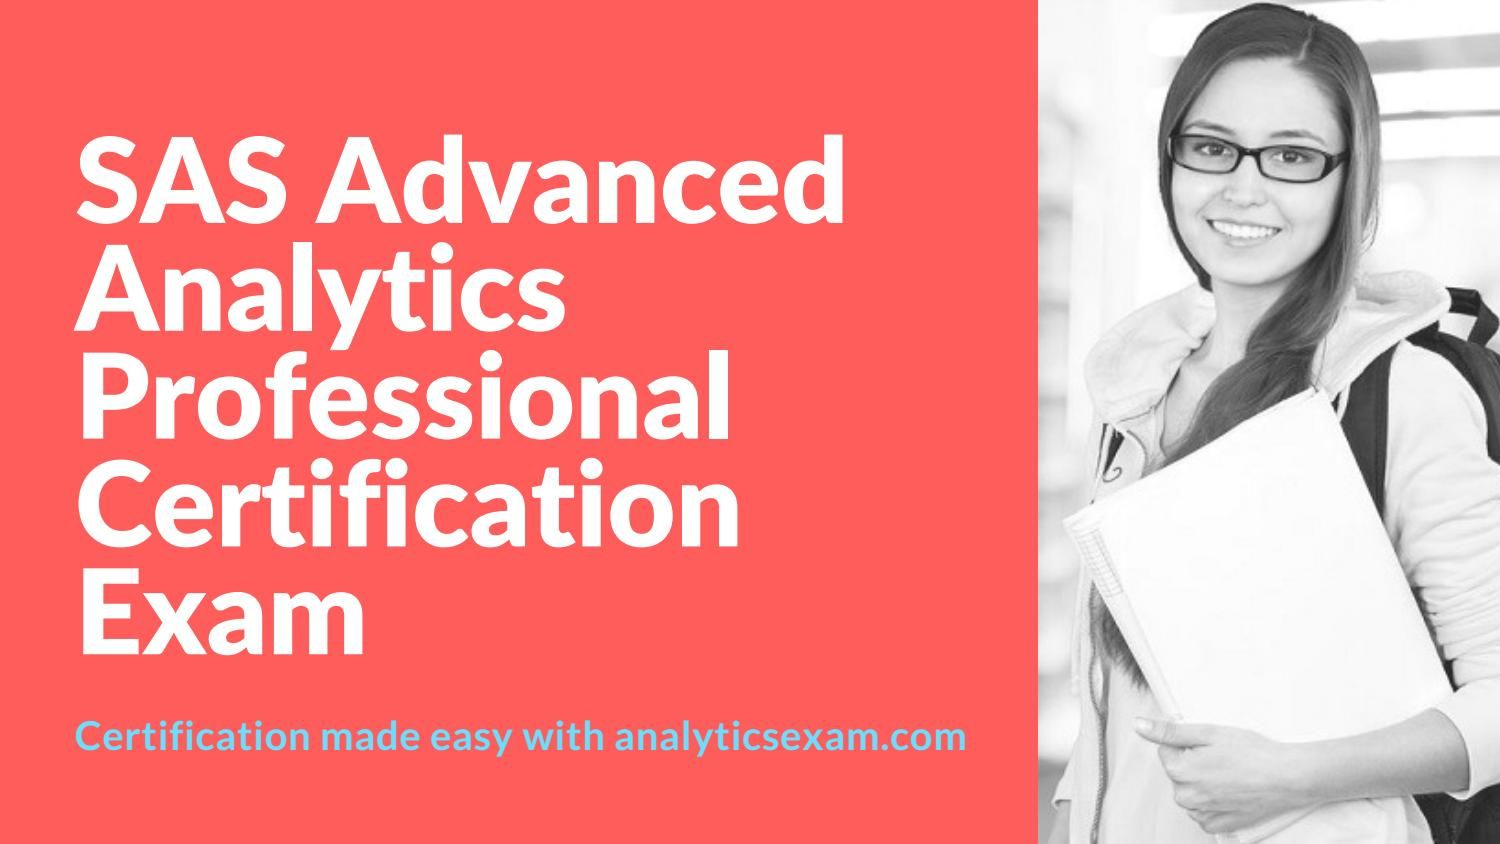 How To Become Sas Certified Advanced Analytics Professional